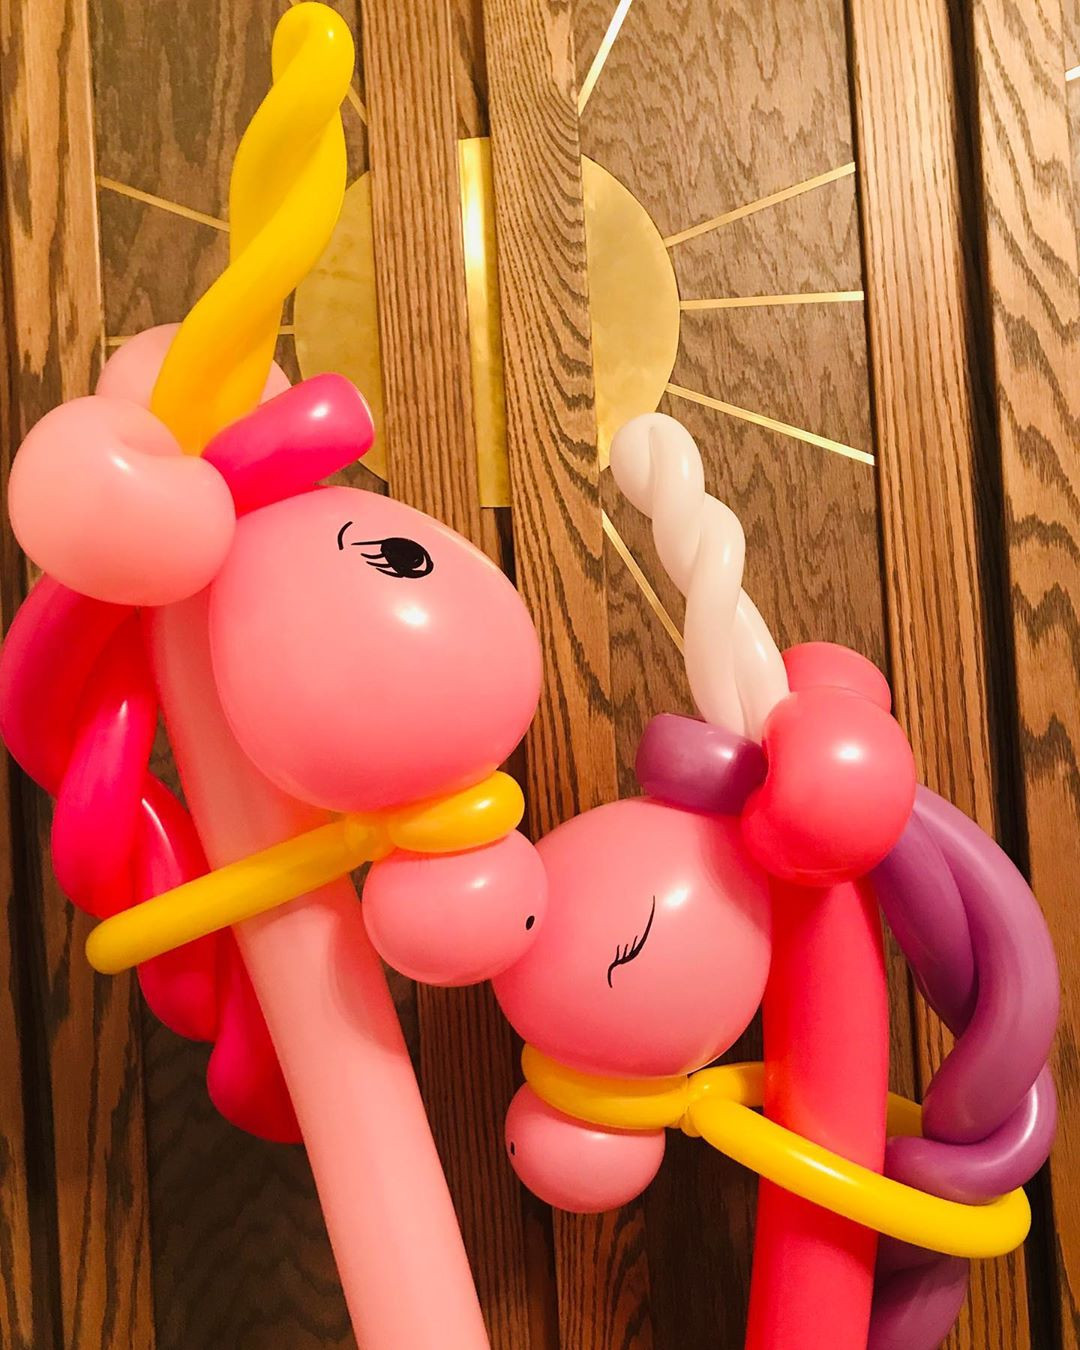 55 Unicorn Balloons for Birthday Party Decorations